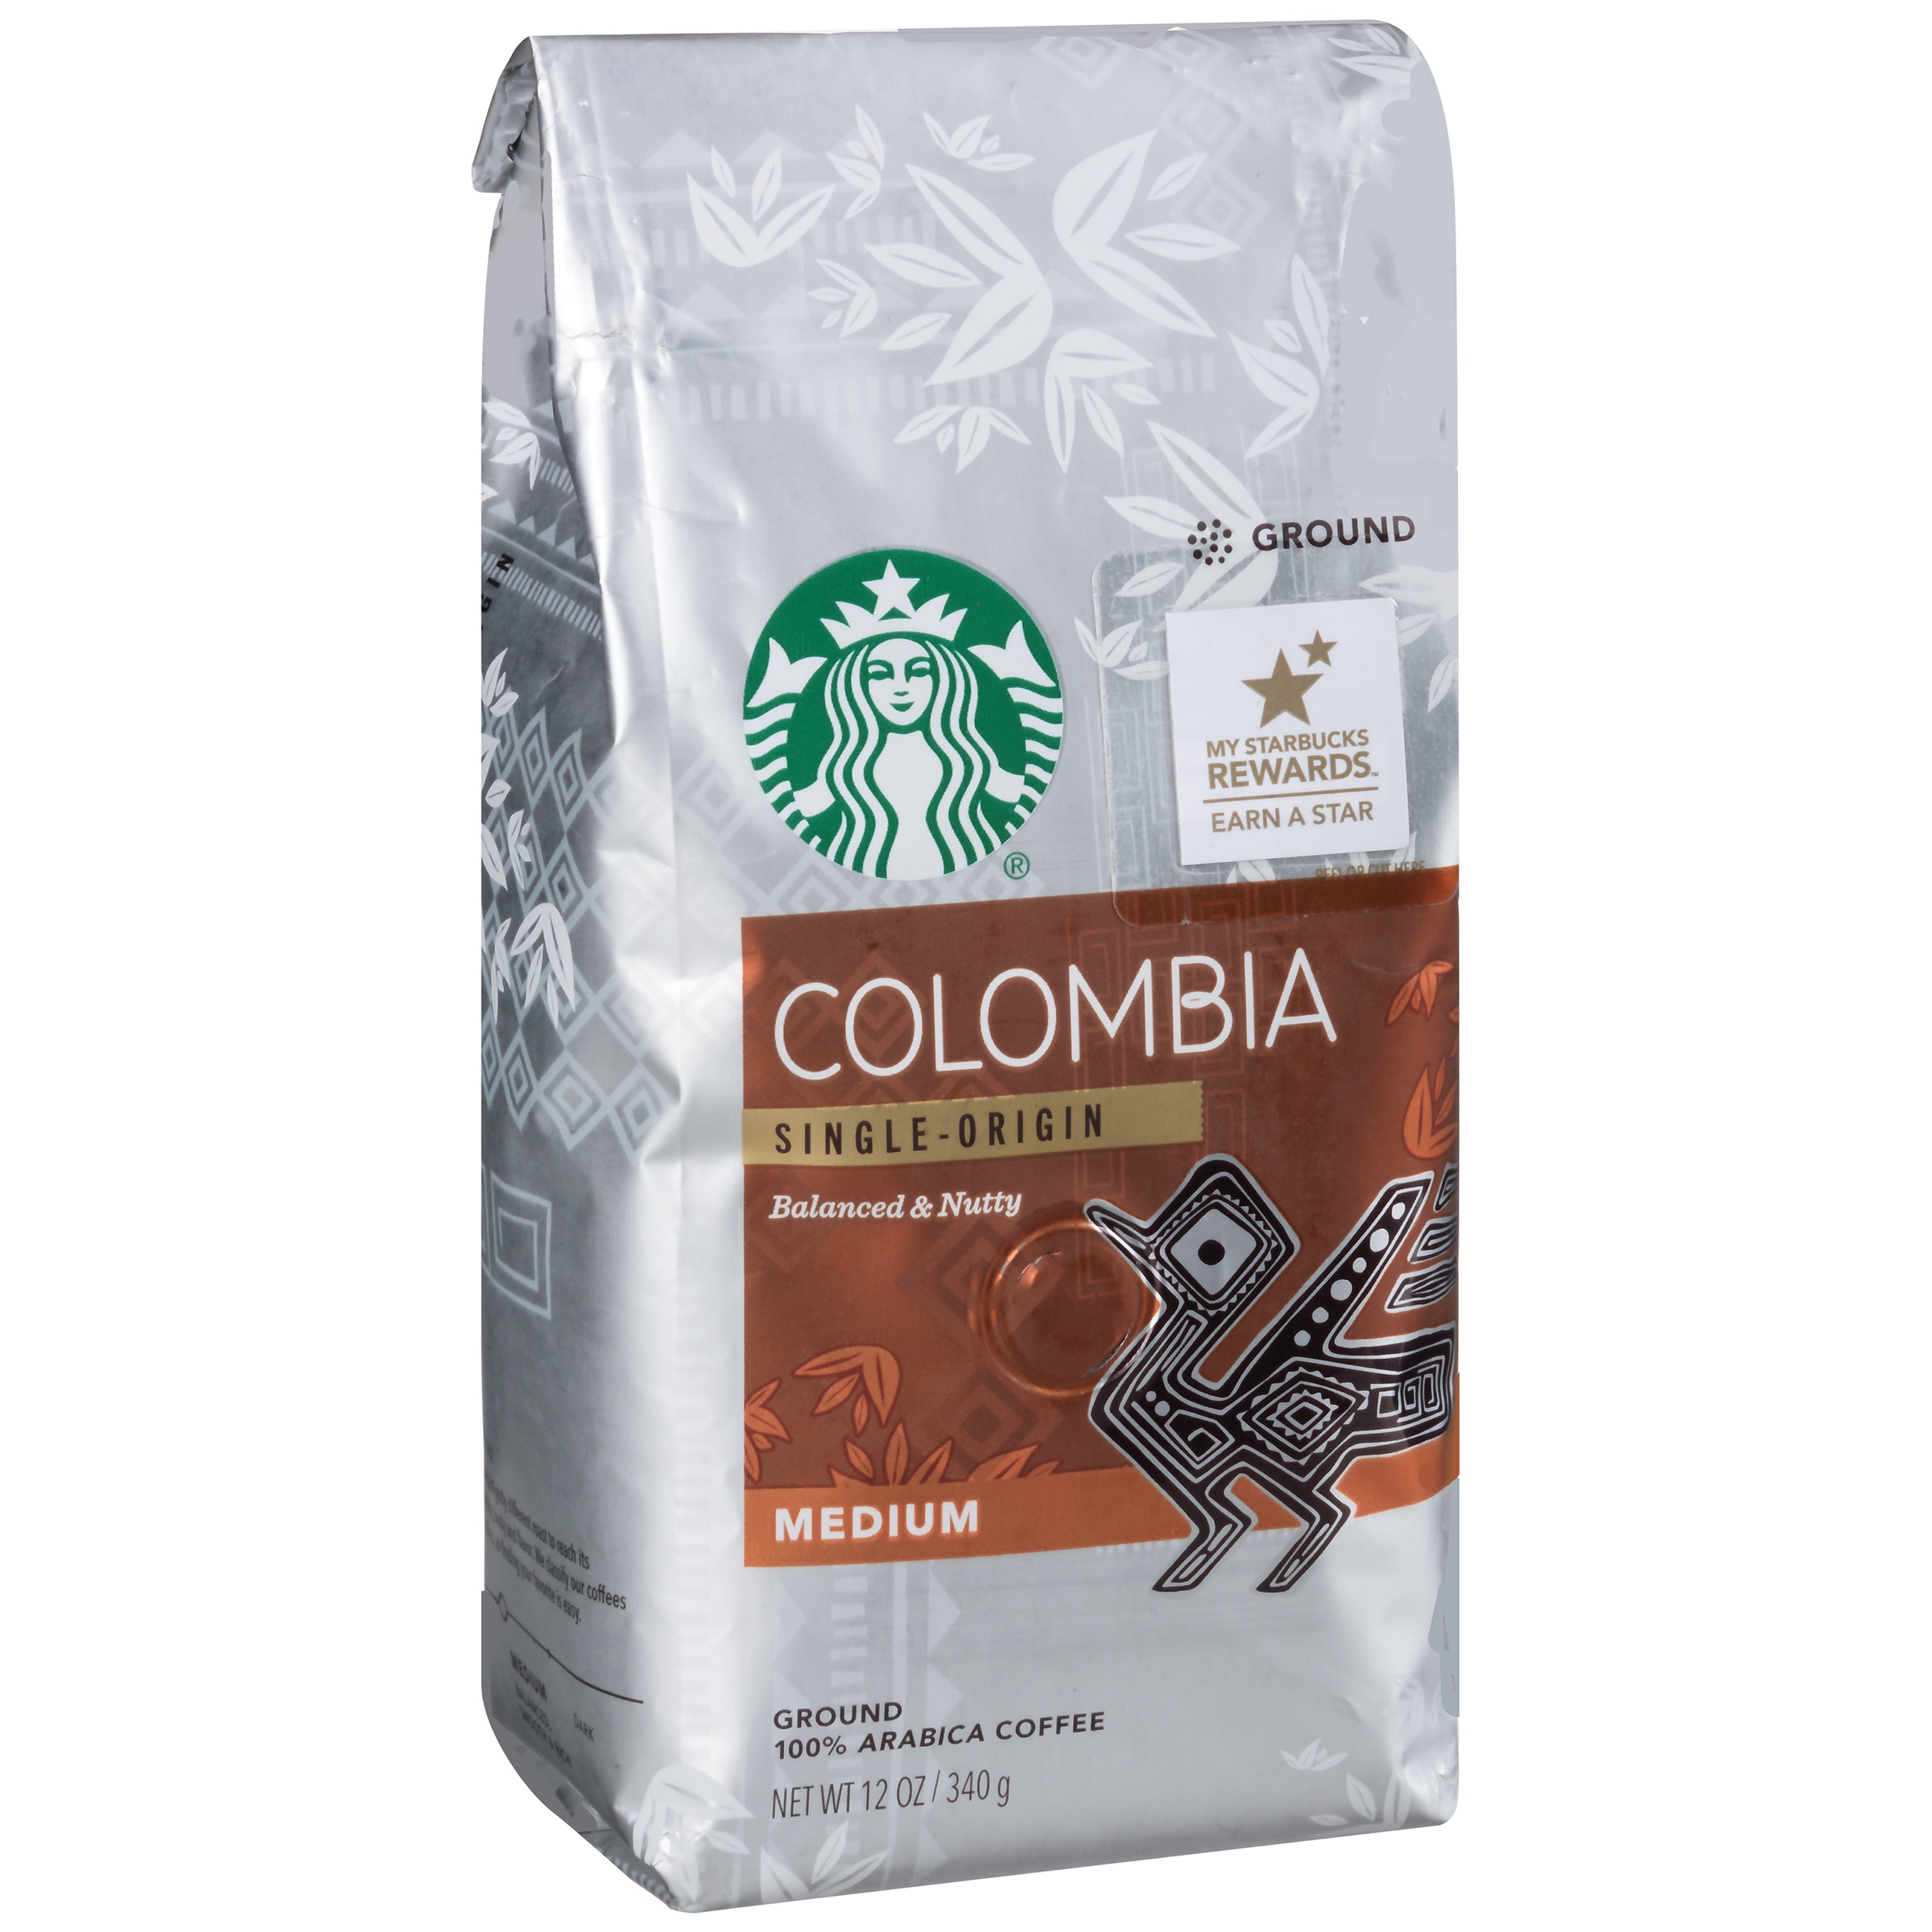 Starbucks Colombia Ground Coffee, 12 oz by STARBUCKS COFFEE COMPANY